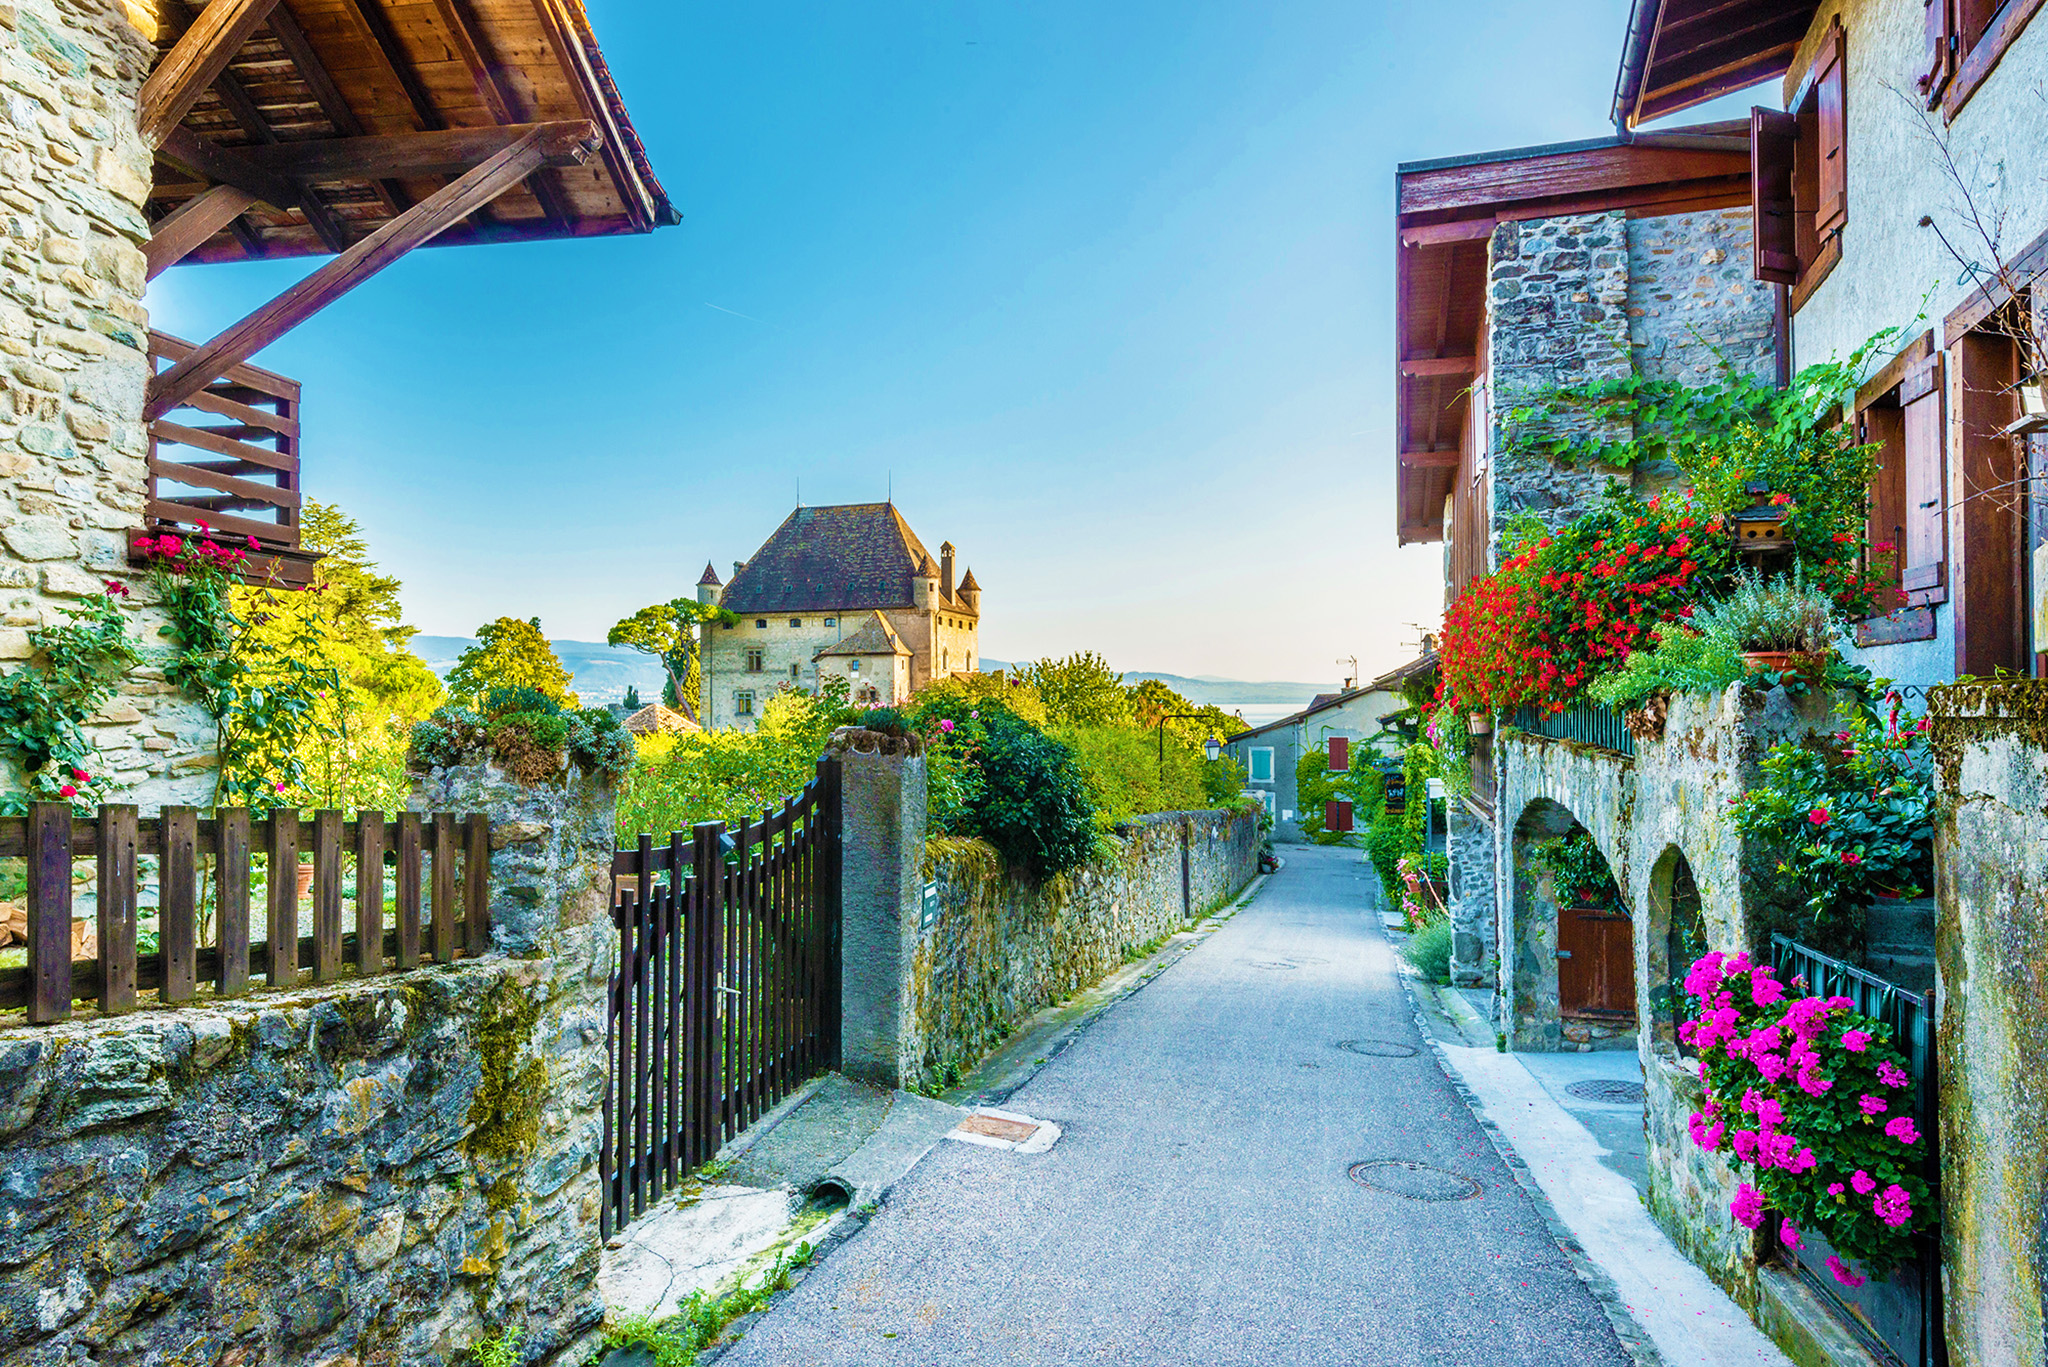 kt_2020_380_Keytours_excursions_Swisstours_yvoire2_2048_10